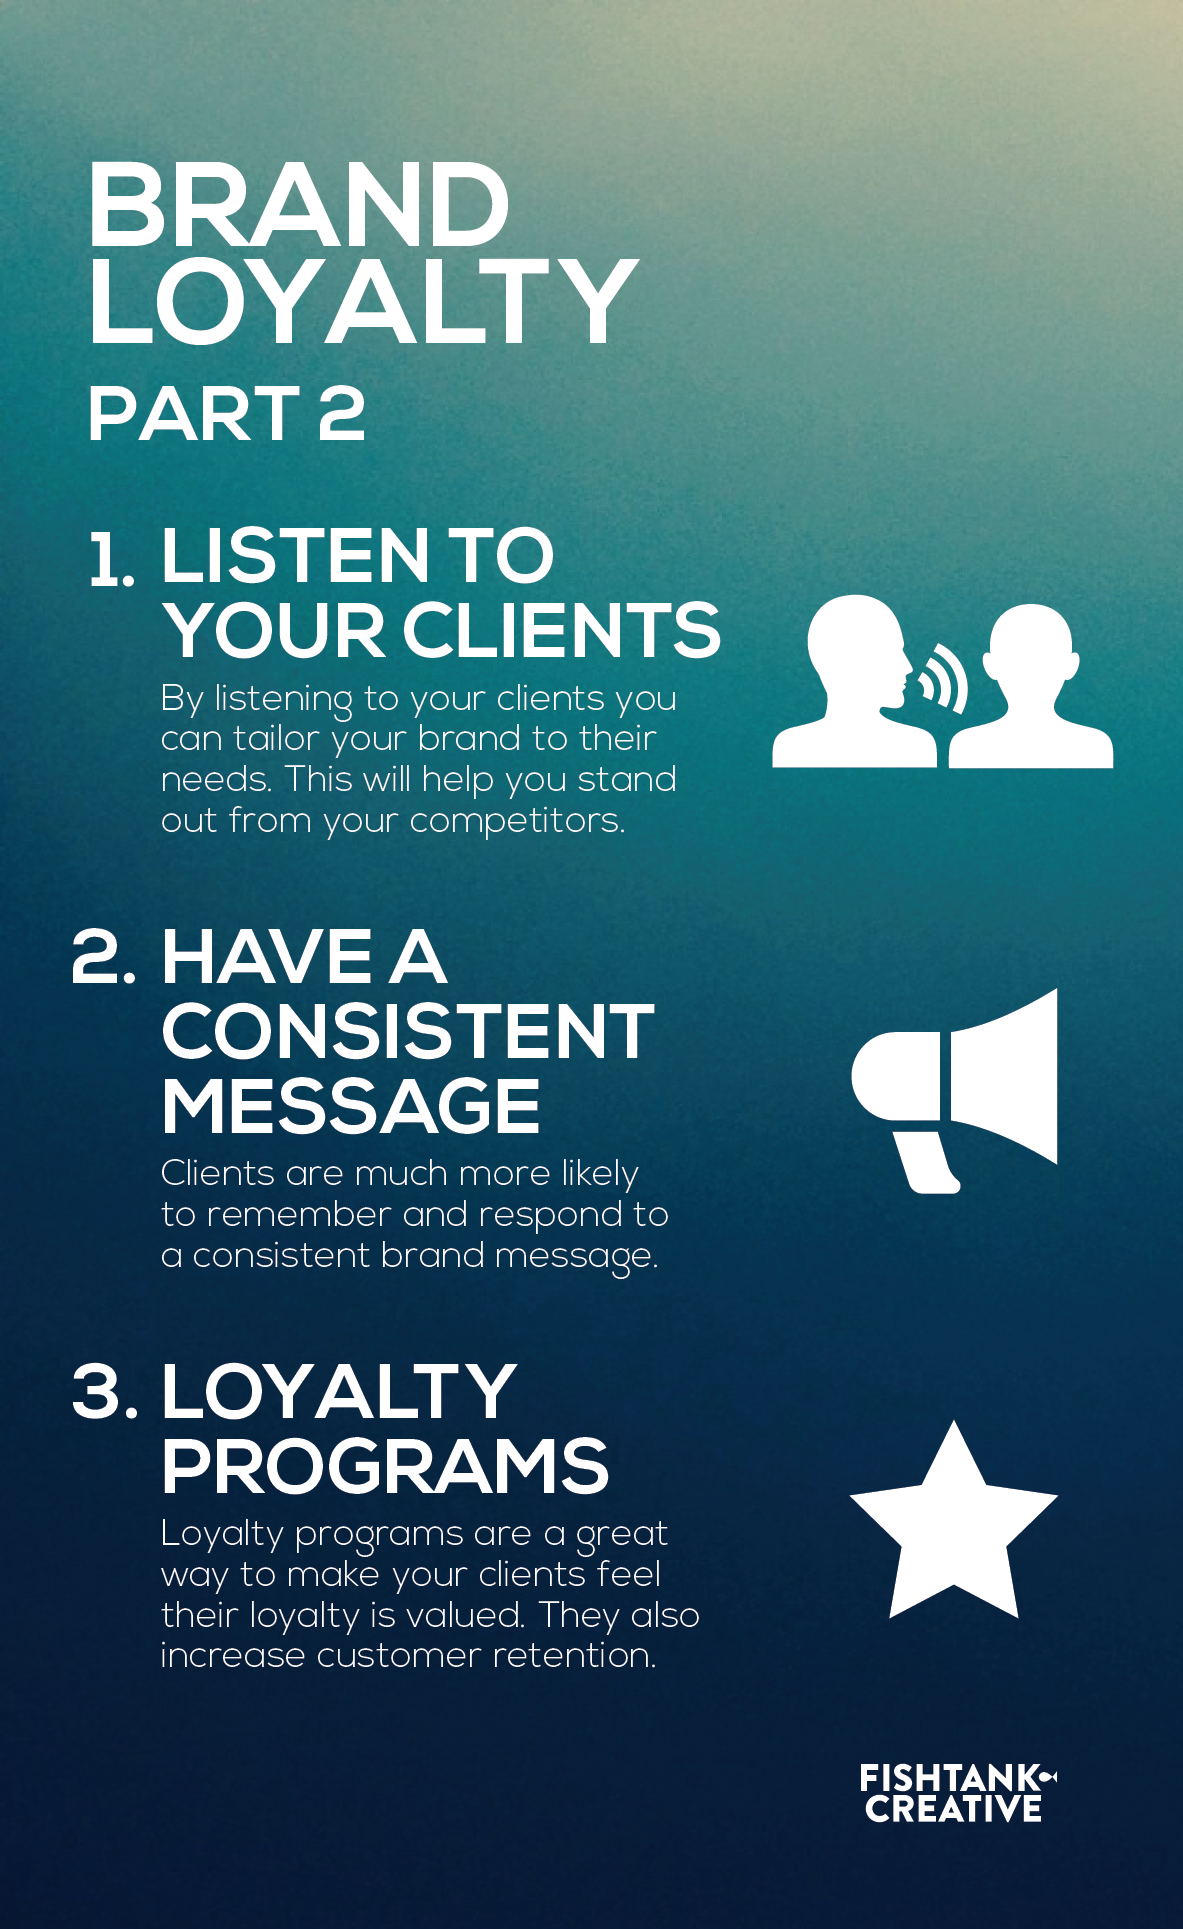 brand loyalty infographic Part 2-01